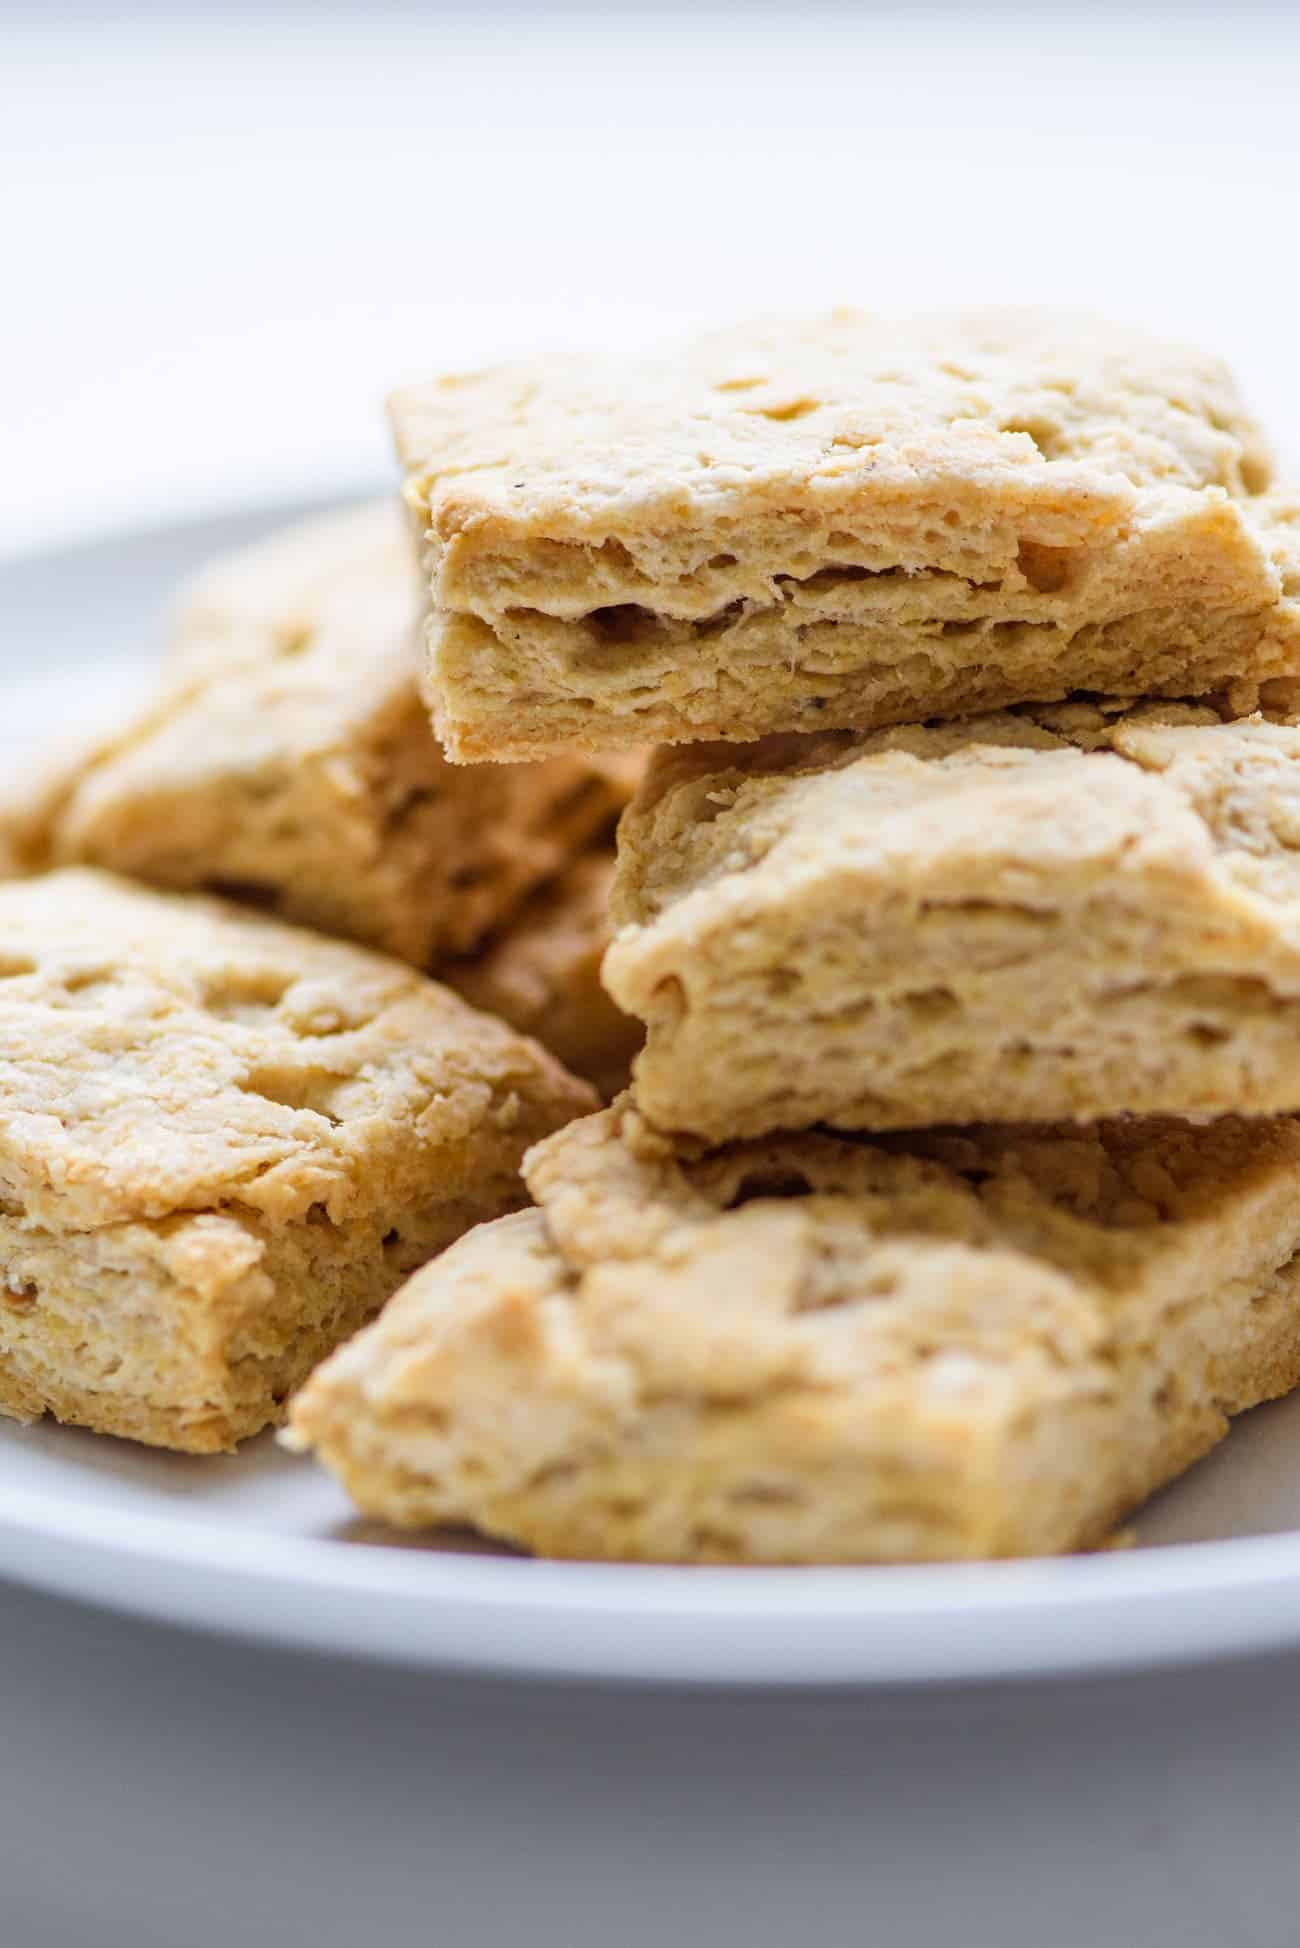 Vegan coconut oil biscuits stacked on a white plate